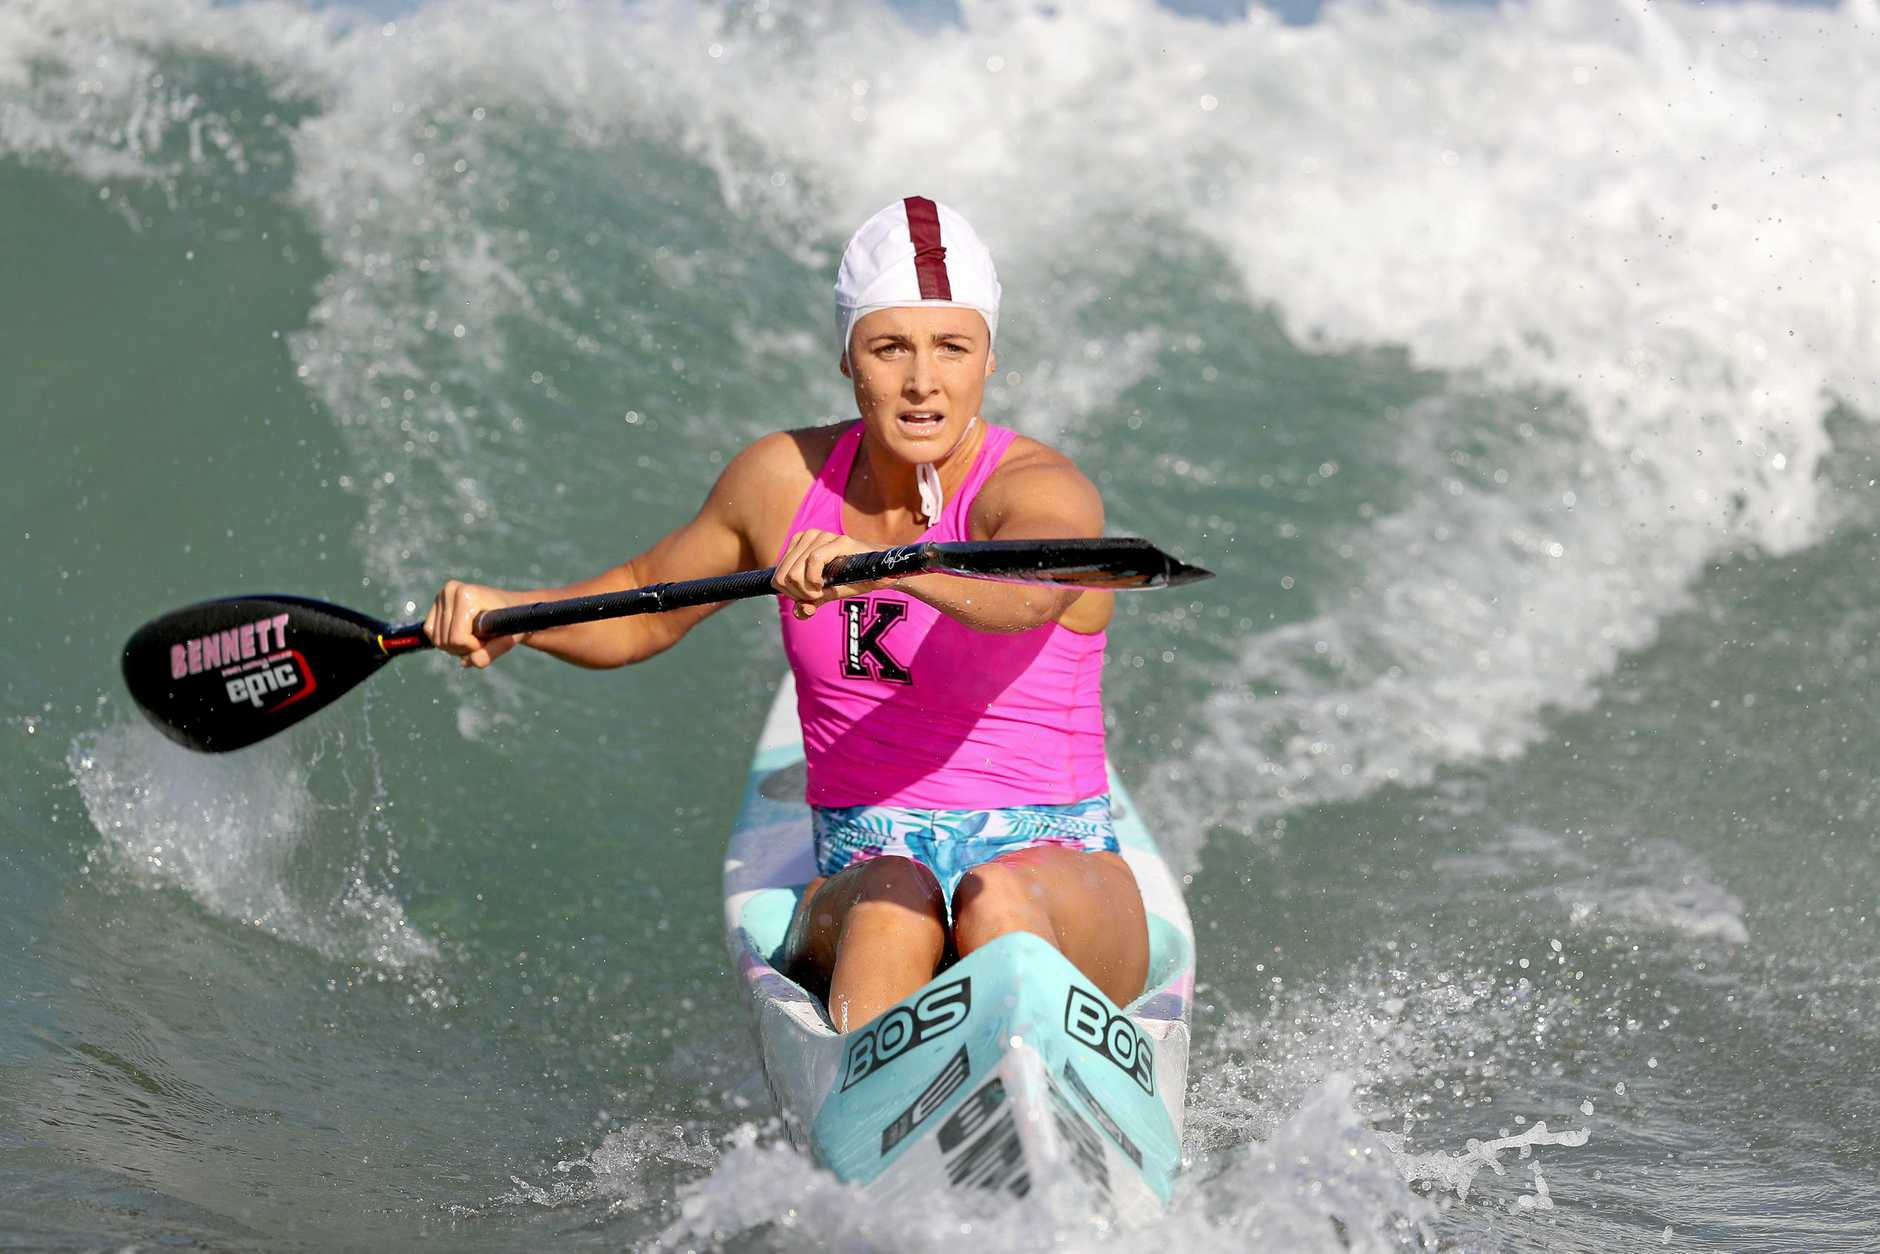 BACK ONBOARD: Noosa Heads athlete Jordan Mercer has the 53km Molokai Challenge (surf ski) on May 26 in her sights.